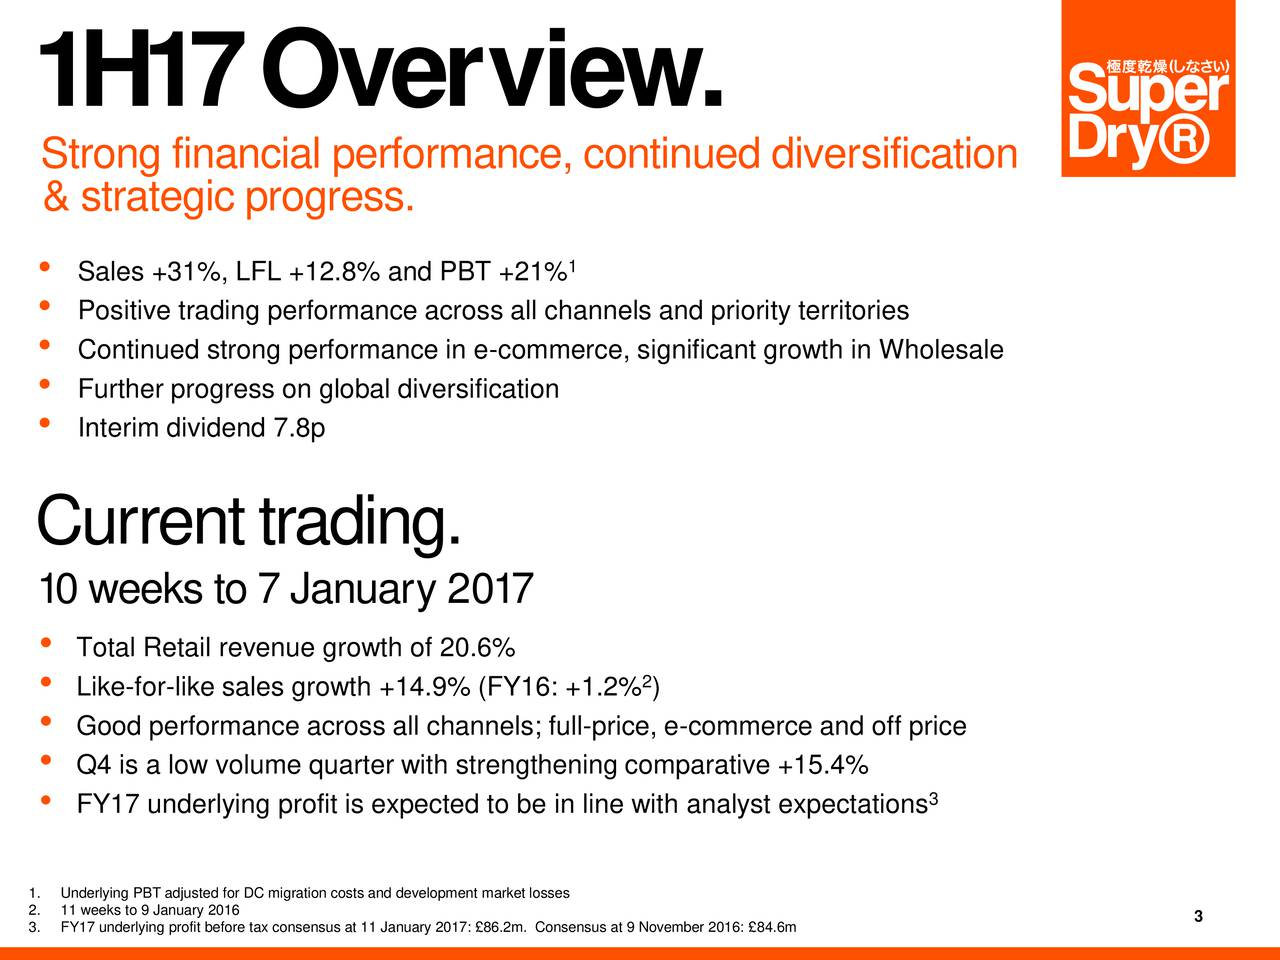 Strong financial performance, continued diversification & strategic progress. Sales +31%, LFL +12.8% and PBT +21% Positive trading performance across all channels and priority territories Continued strong performance in e-commerce, significant growth in Wholesale Further progress on global diversification Interim dividend 7.8p Currenttrading. 10 weeks to 7 January 2017 Total Retail revenue growth of 20.6% Like-for-like sales growth +14.9% (FY16: +1.2% ) Good performance across all channels; full-price, e-commerce and off price Q4 is a low volume quarter with strengthening comparative +15.4% FY17 underlying profit is expected to be in line with analyst expectations 3.FY17 underlying profit before tax consensus at 11 January 2017: 86.2m. Consensus at 9 November 2016: 84.6m